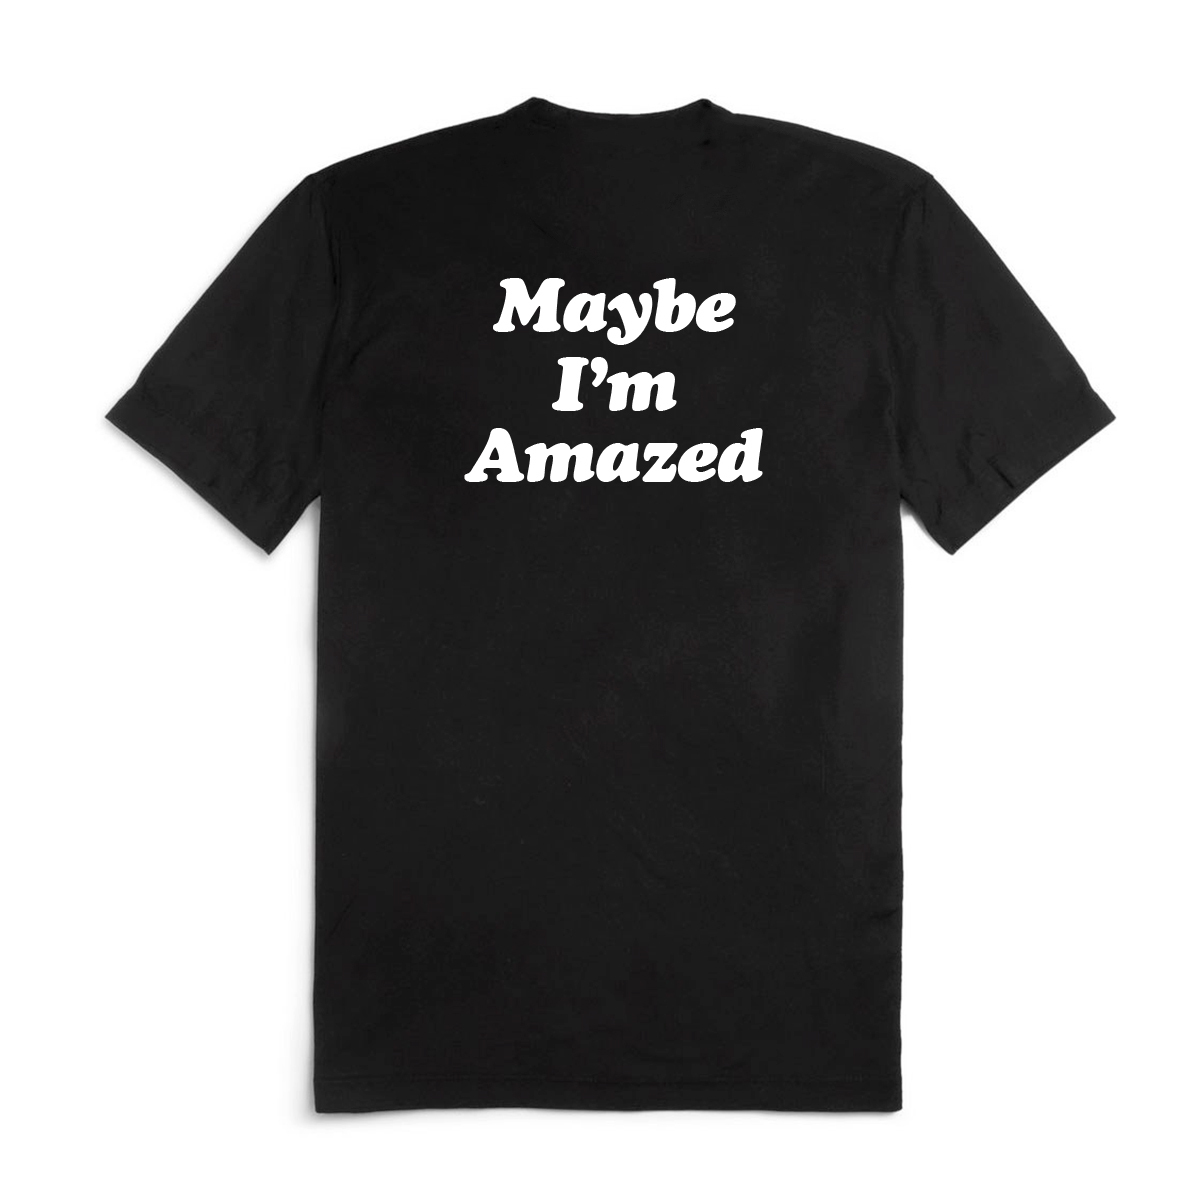 Maybe I'm Amazed Tee